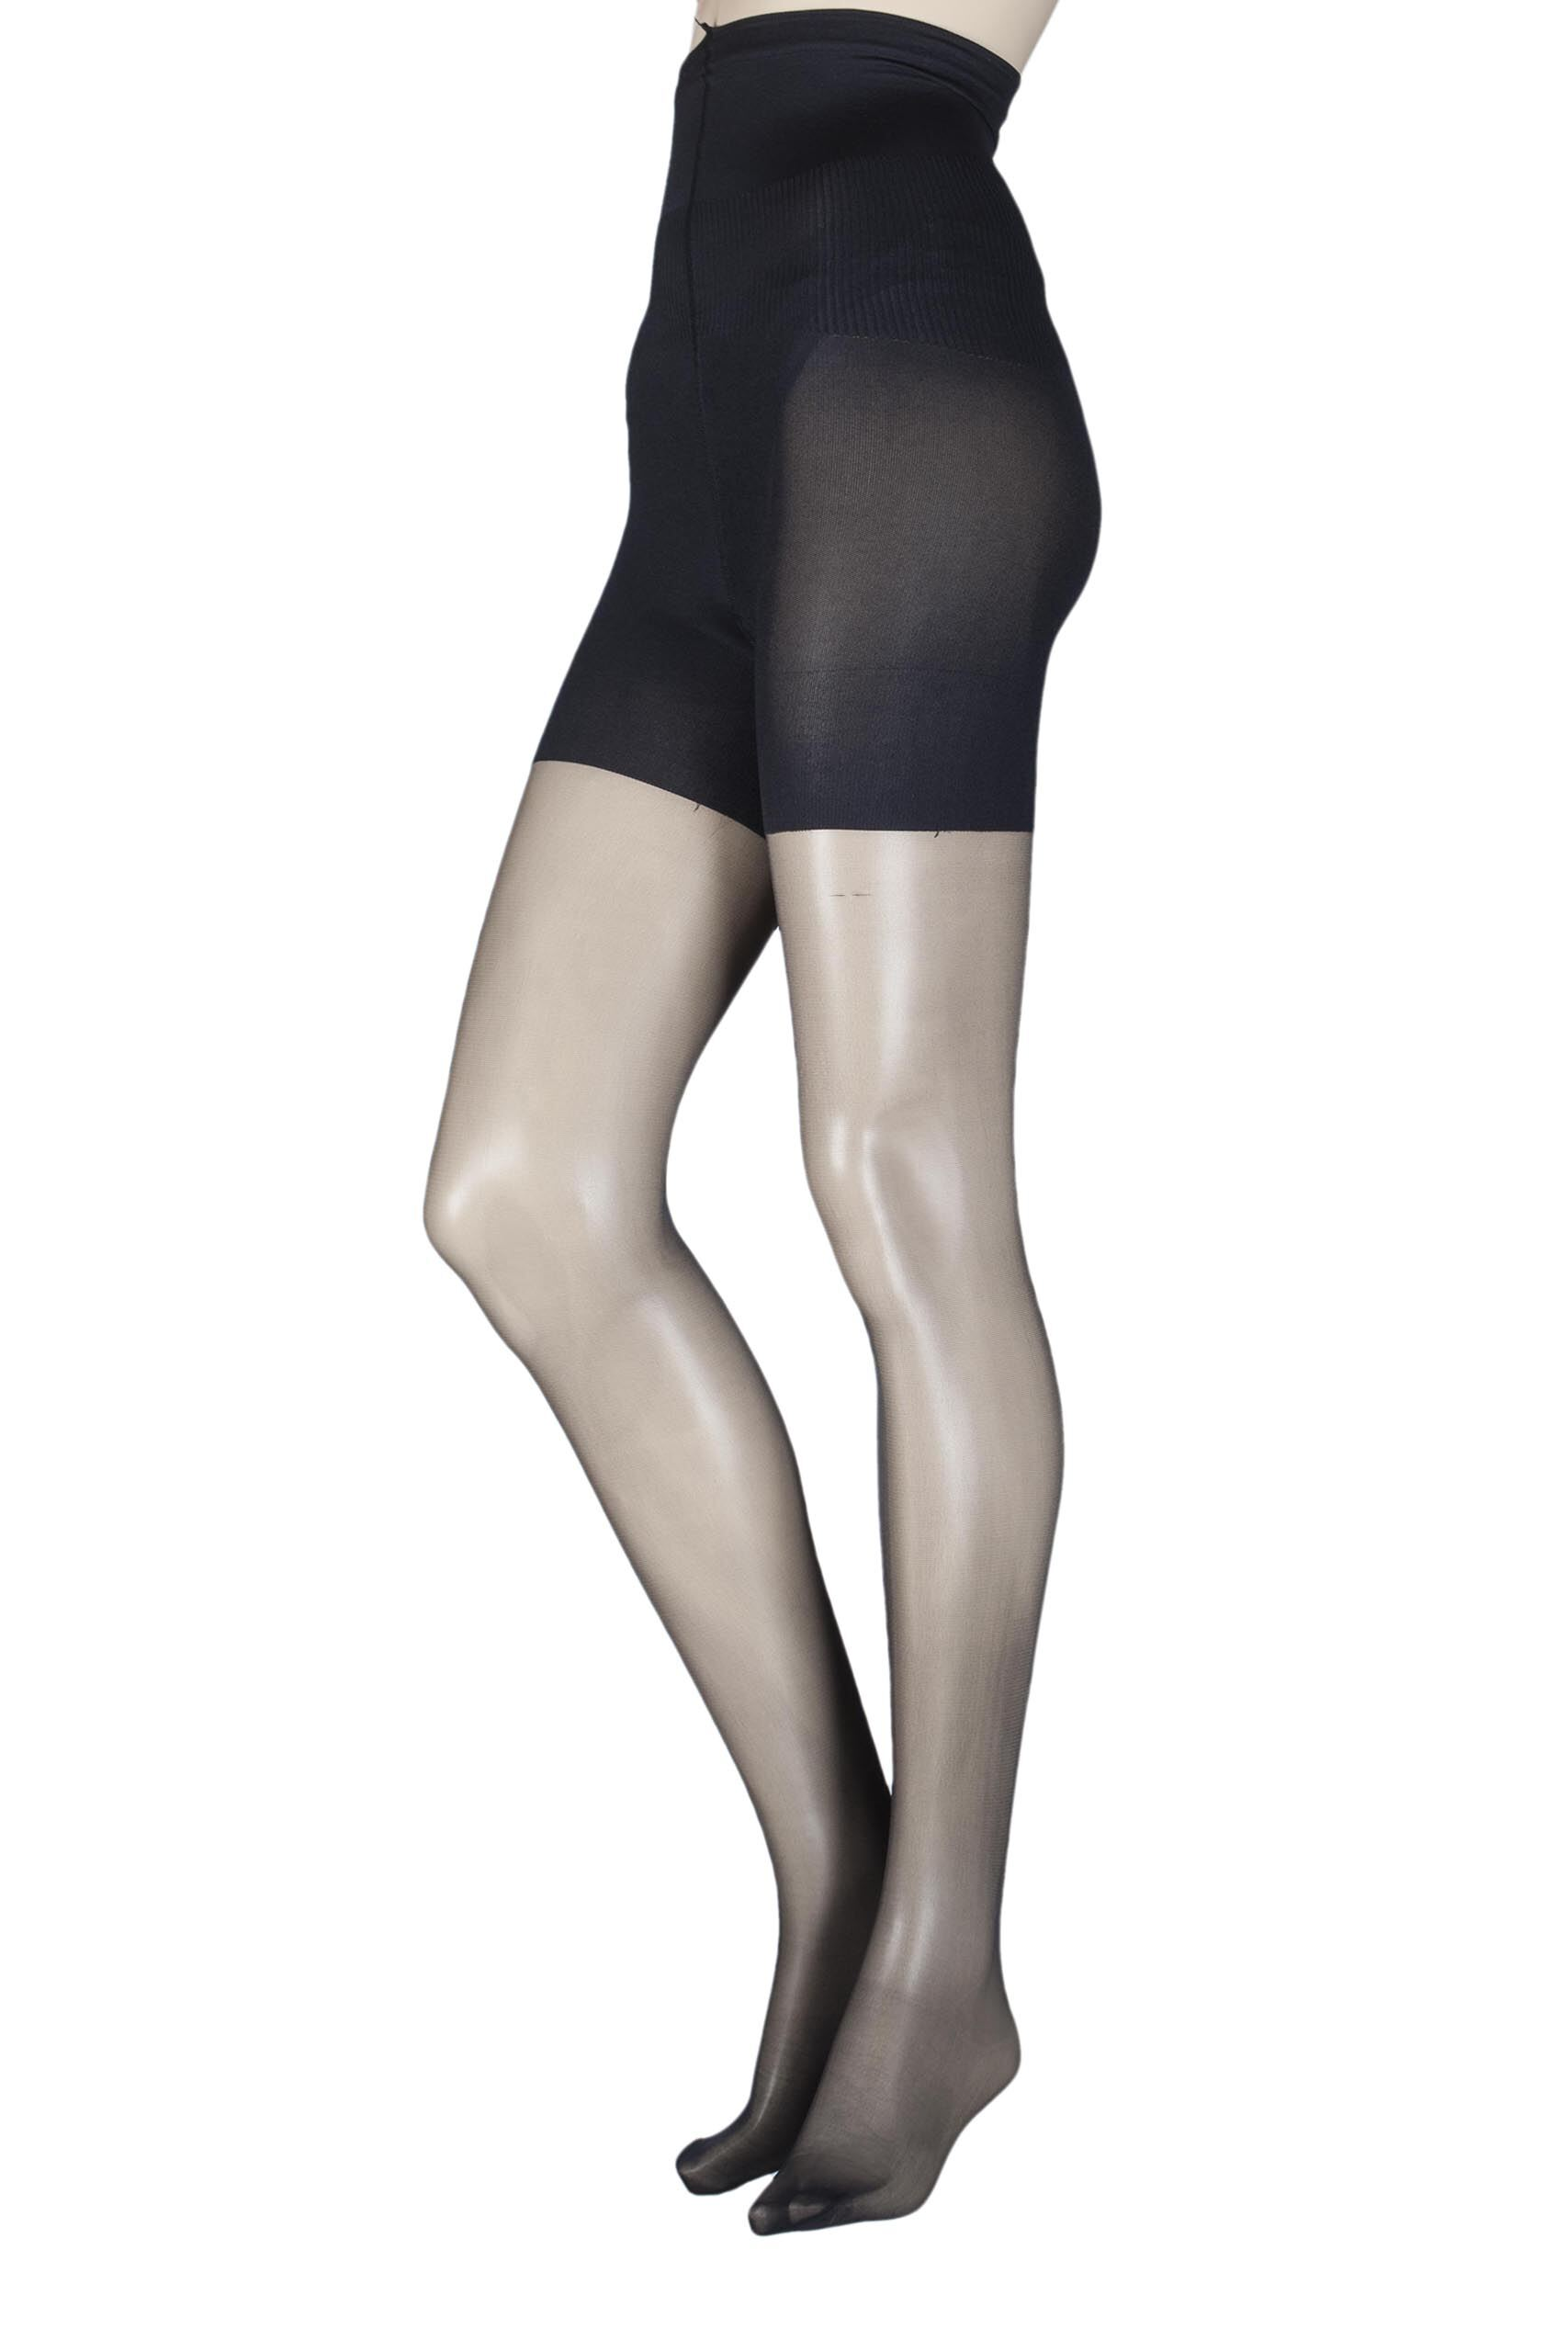 Image of 1 Pair Black 10 Denier Hourglass Toner Tights Ladies Medium/Large - Aristoc